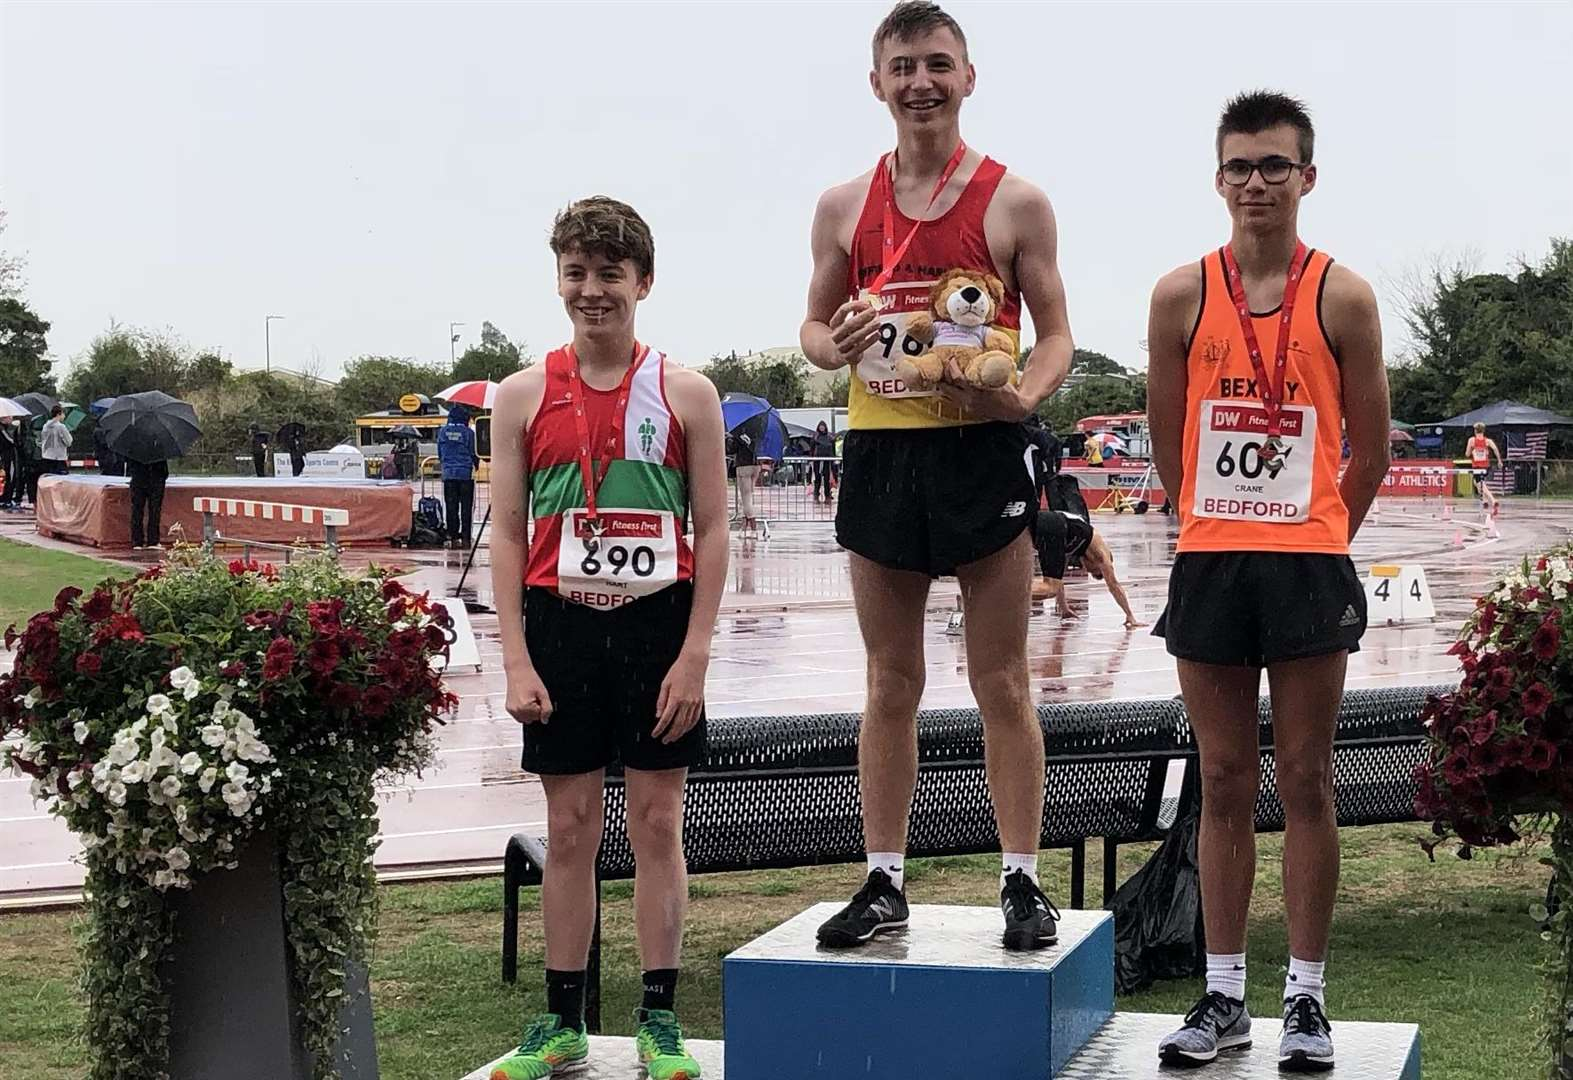 U17 Championships just the start for ambitious Wilkinson